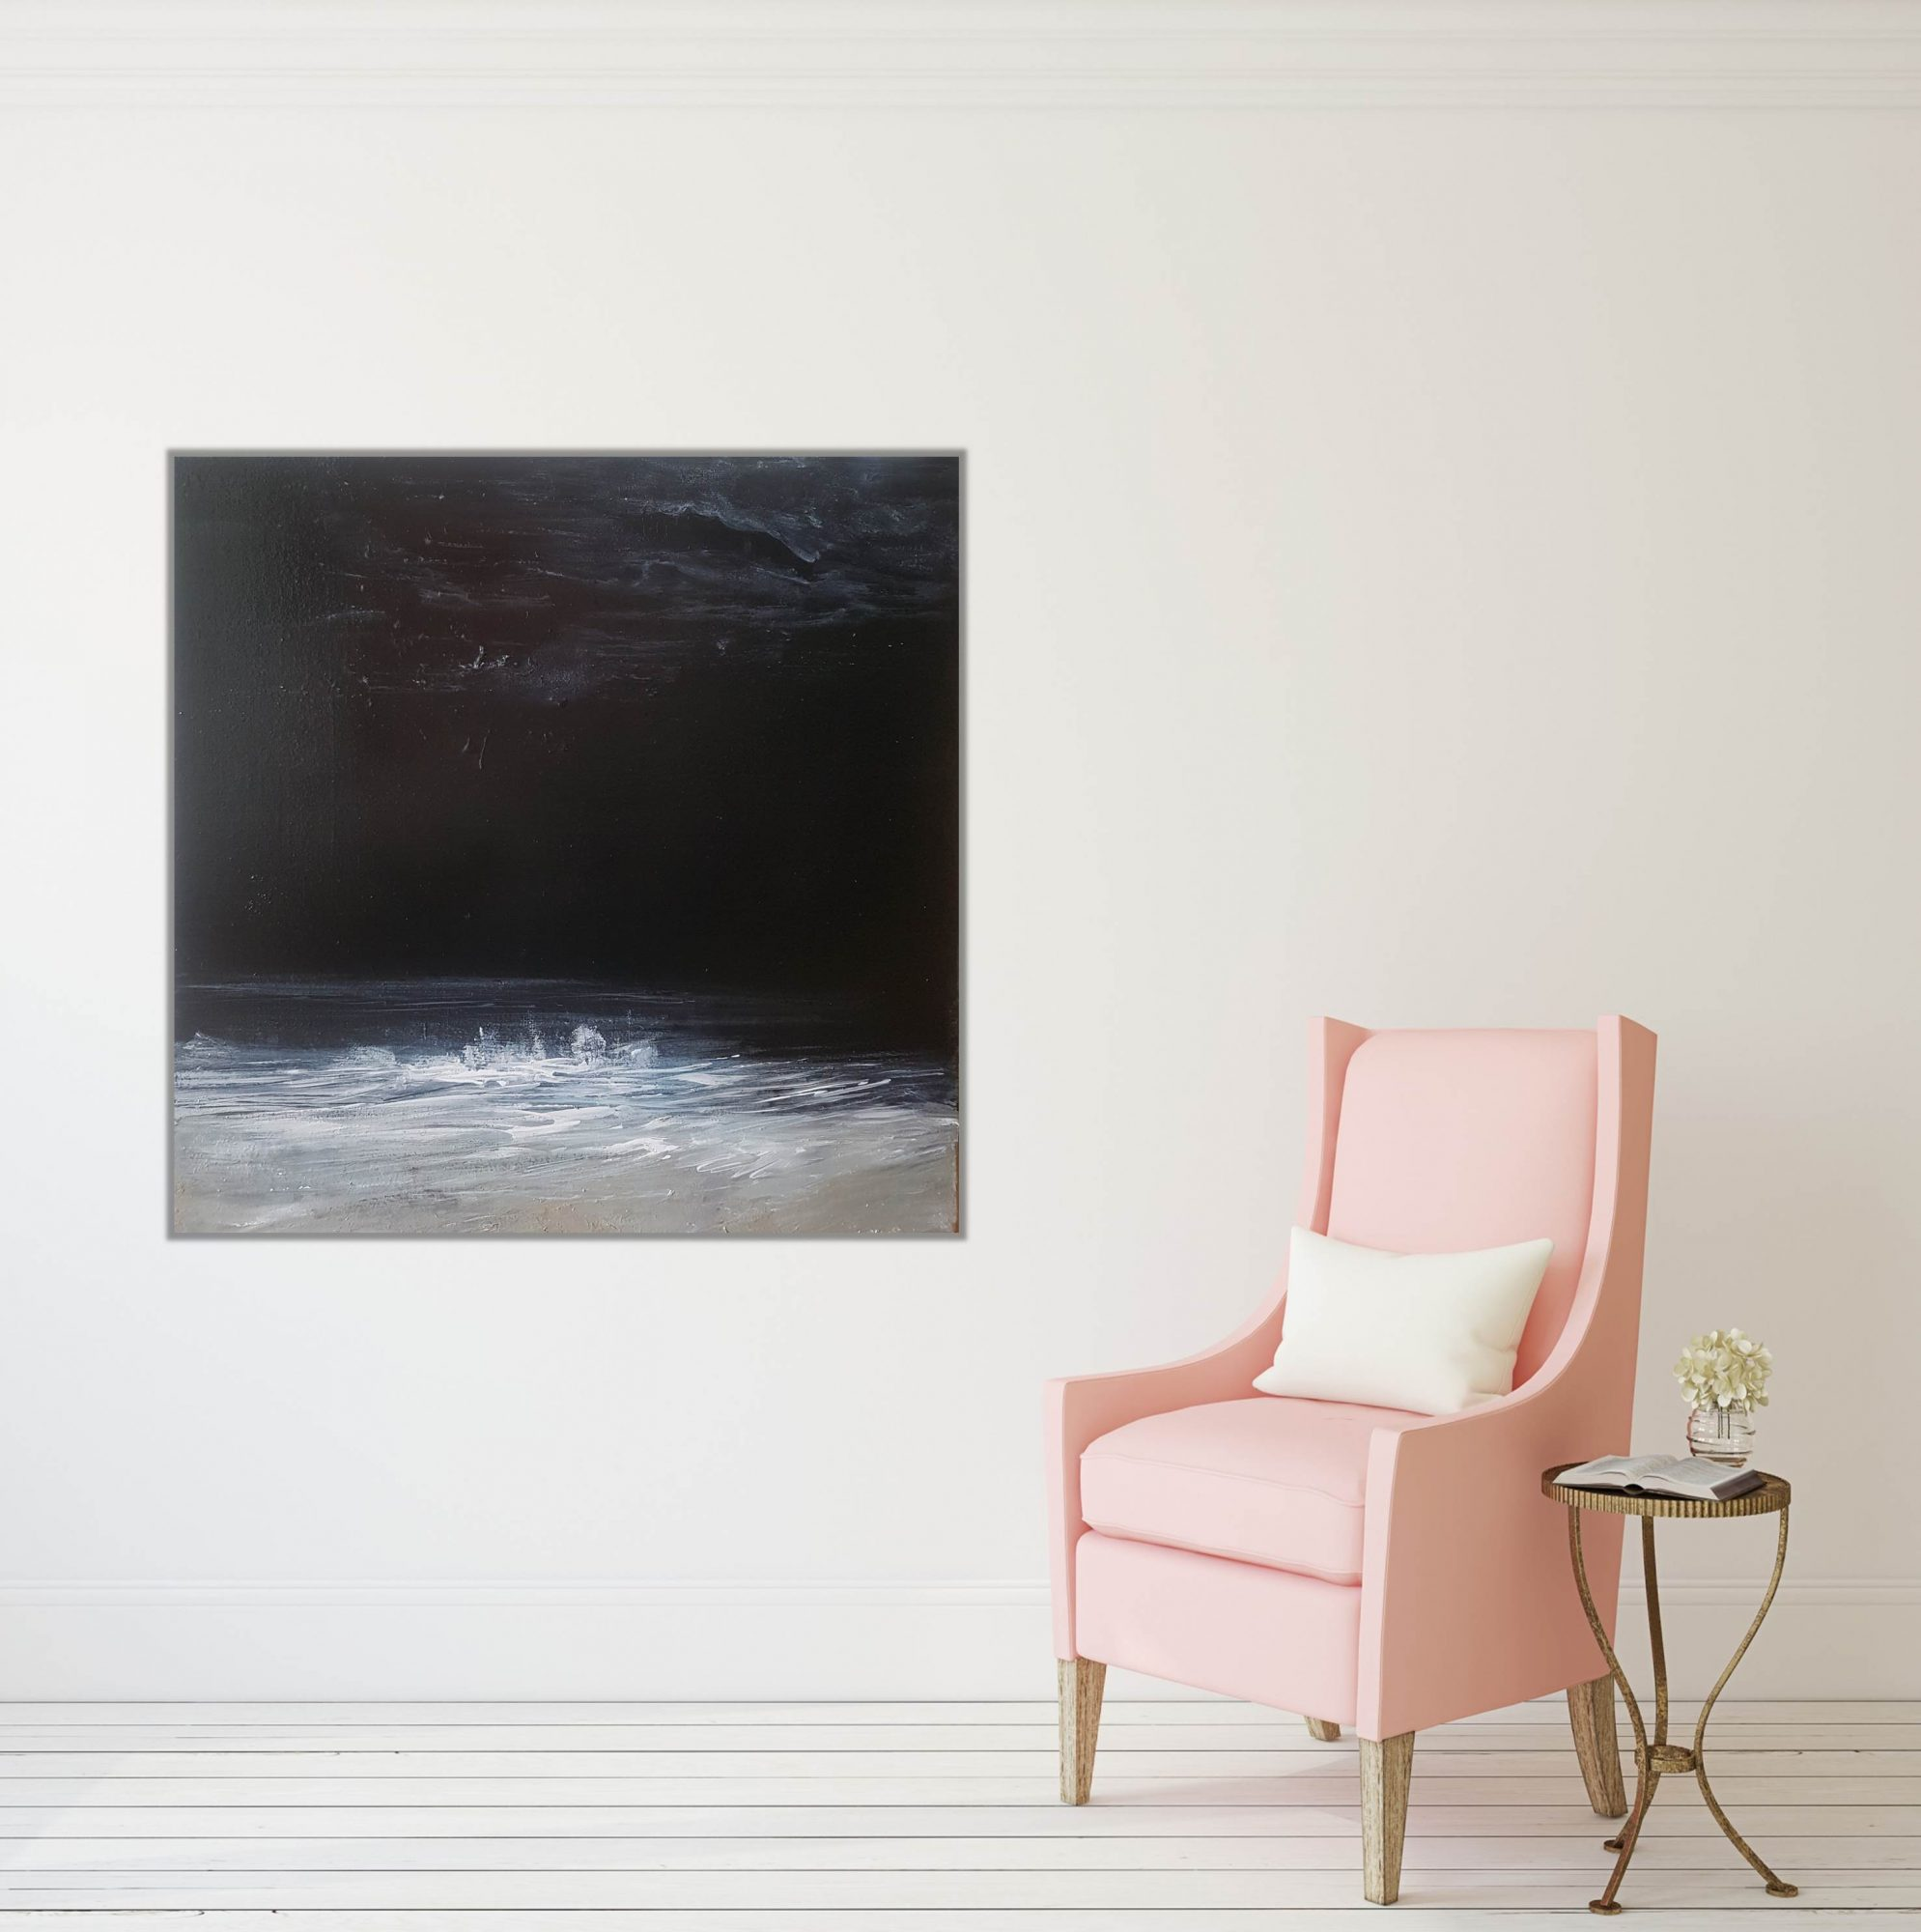 night-beach-with-pink-chair